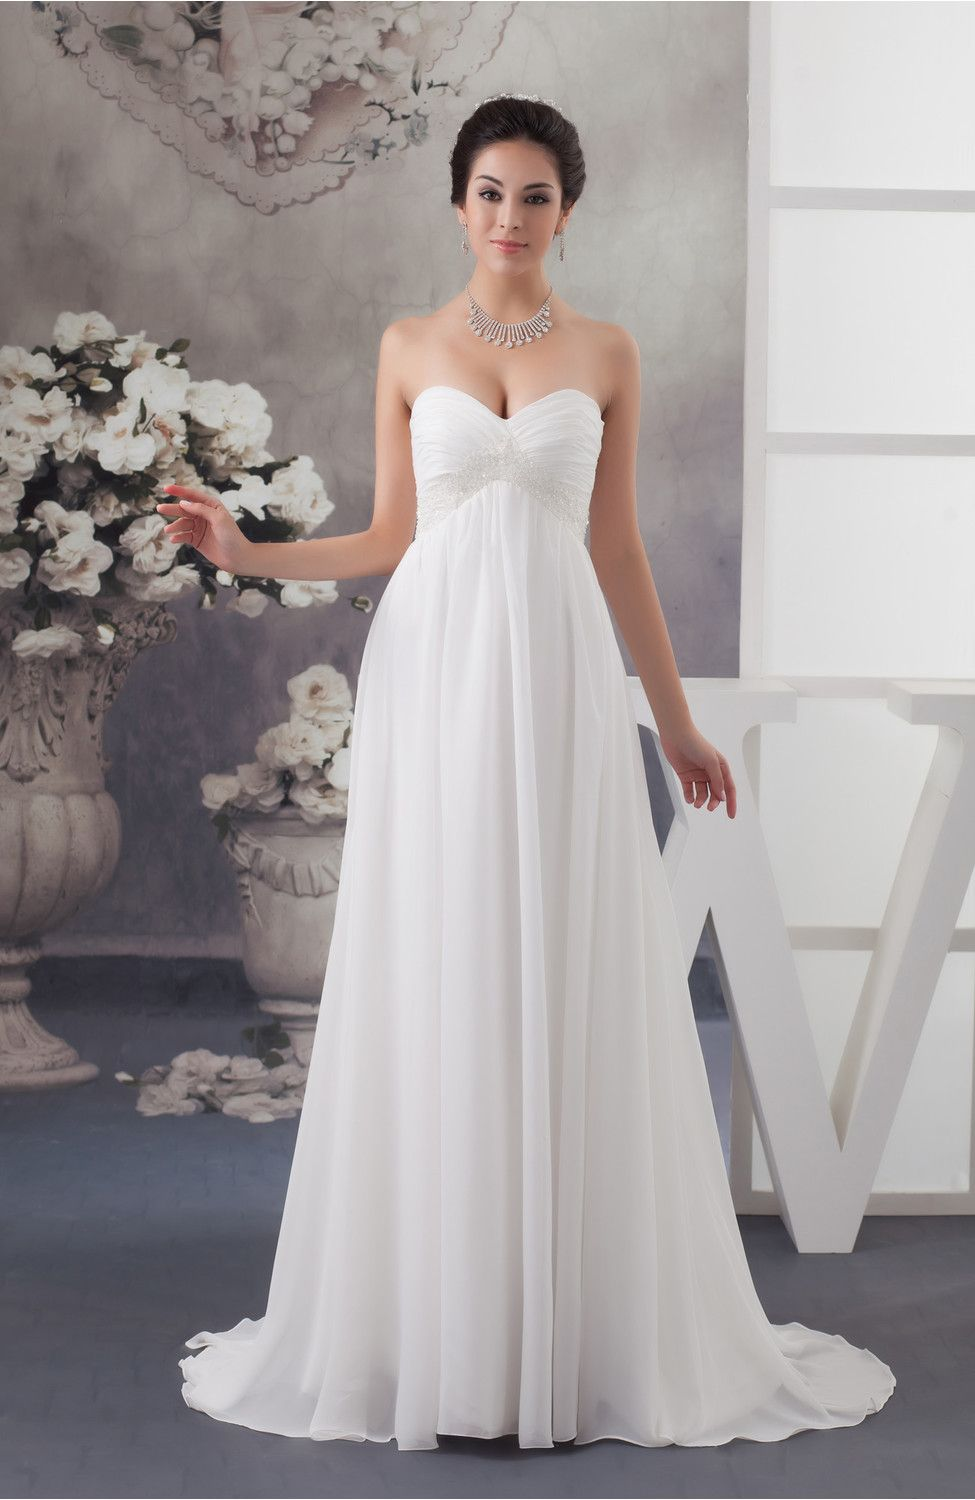 b1e8272c2980a Maternity Bridal Gowns Inexpensive Sweetheart Fall Full Figure Formal